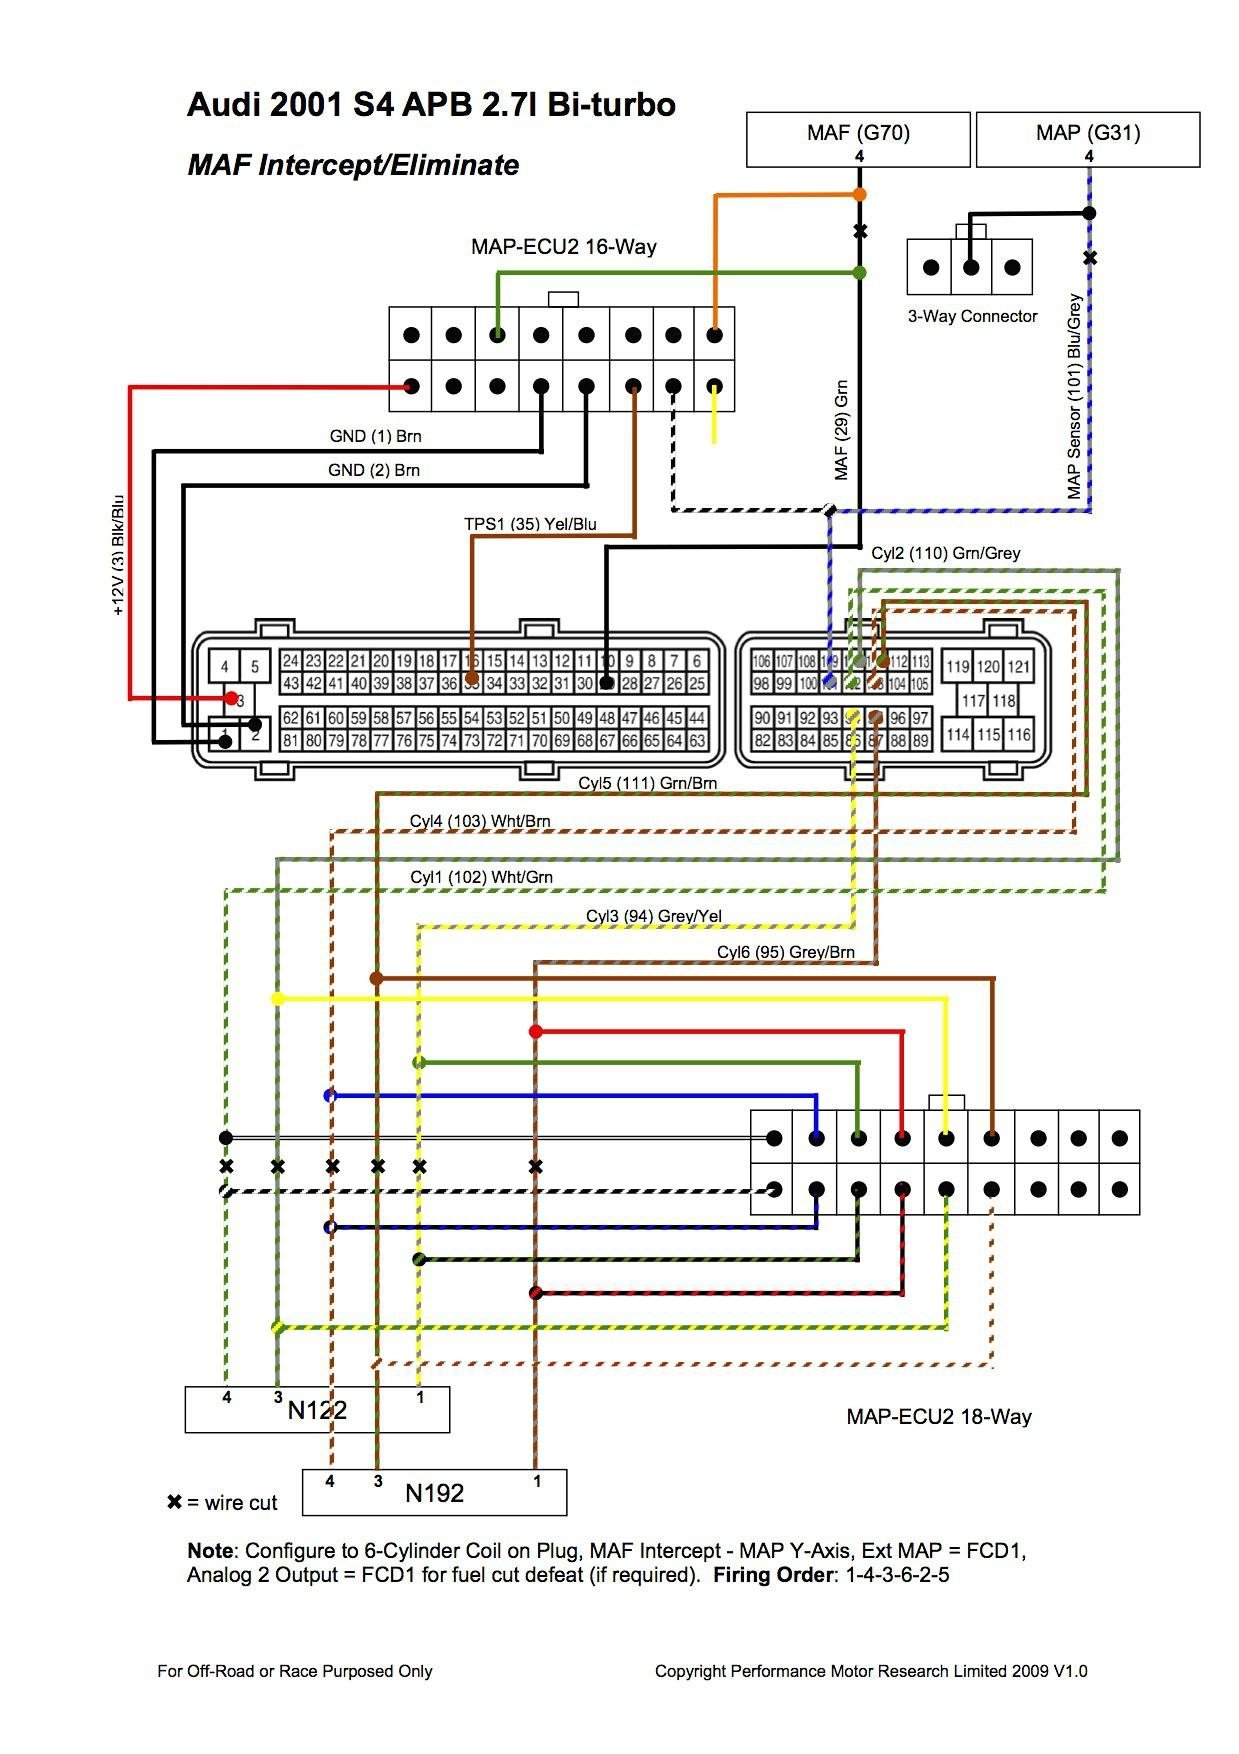 M Audio Wiring Diagrams - Data Wiring Diagram Today - 2012 Gmc Sierra Factory Usb Radio Wiring Diagram